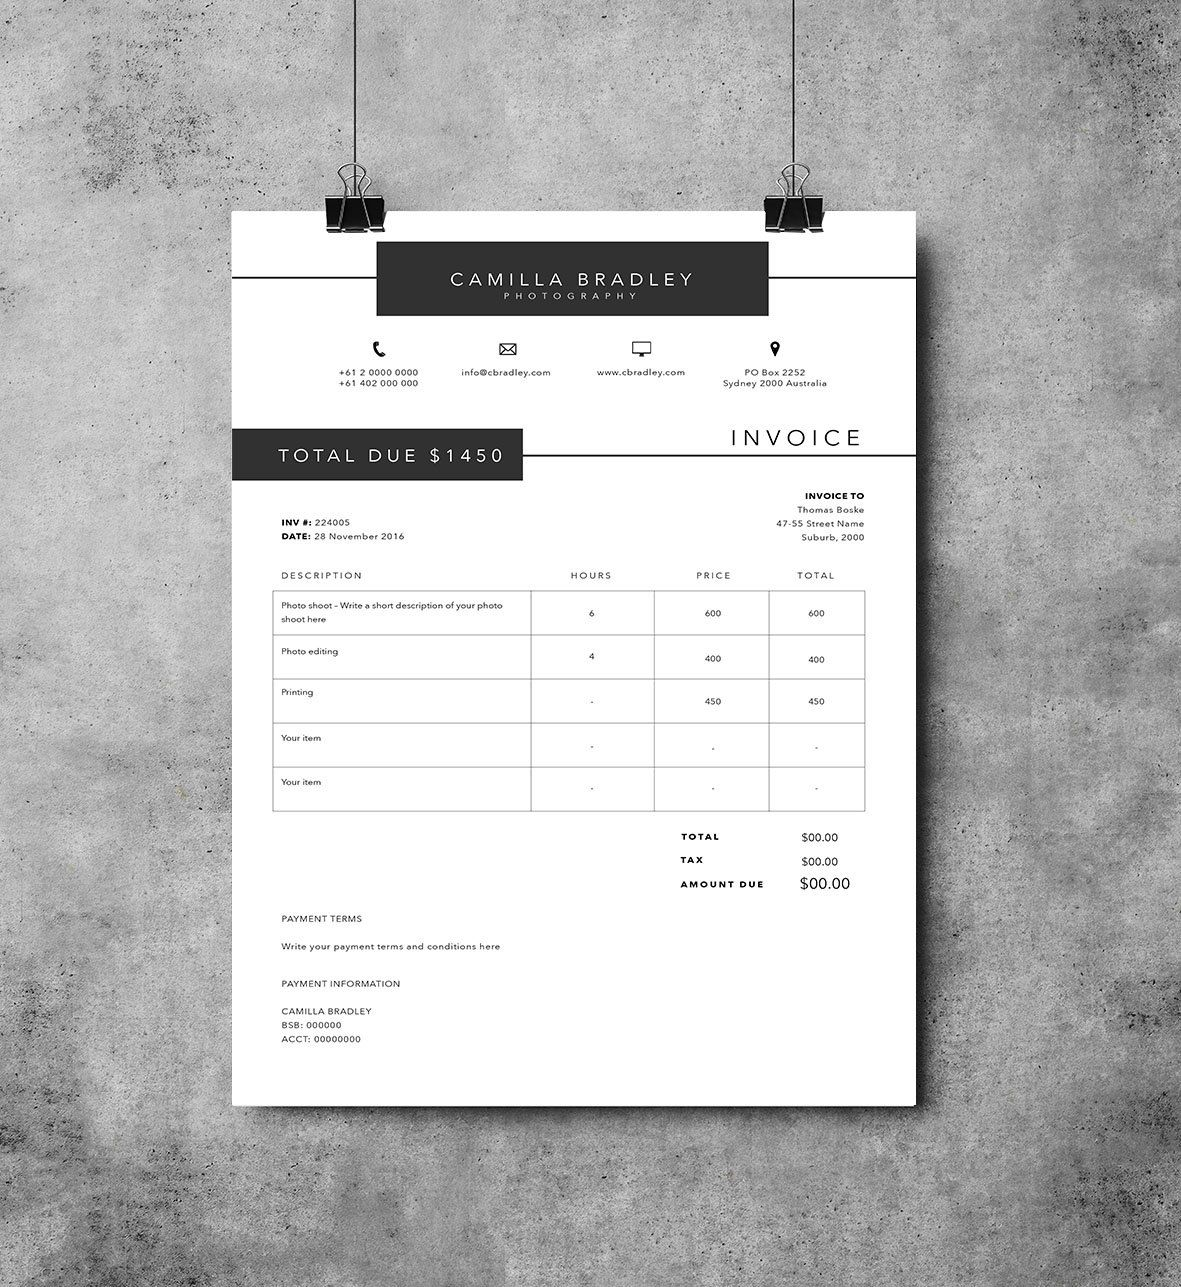 photography invoice template invoice design receipt. Black Bedroom Furniture Sets. Home Design Ideas